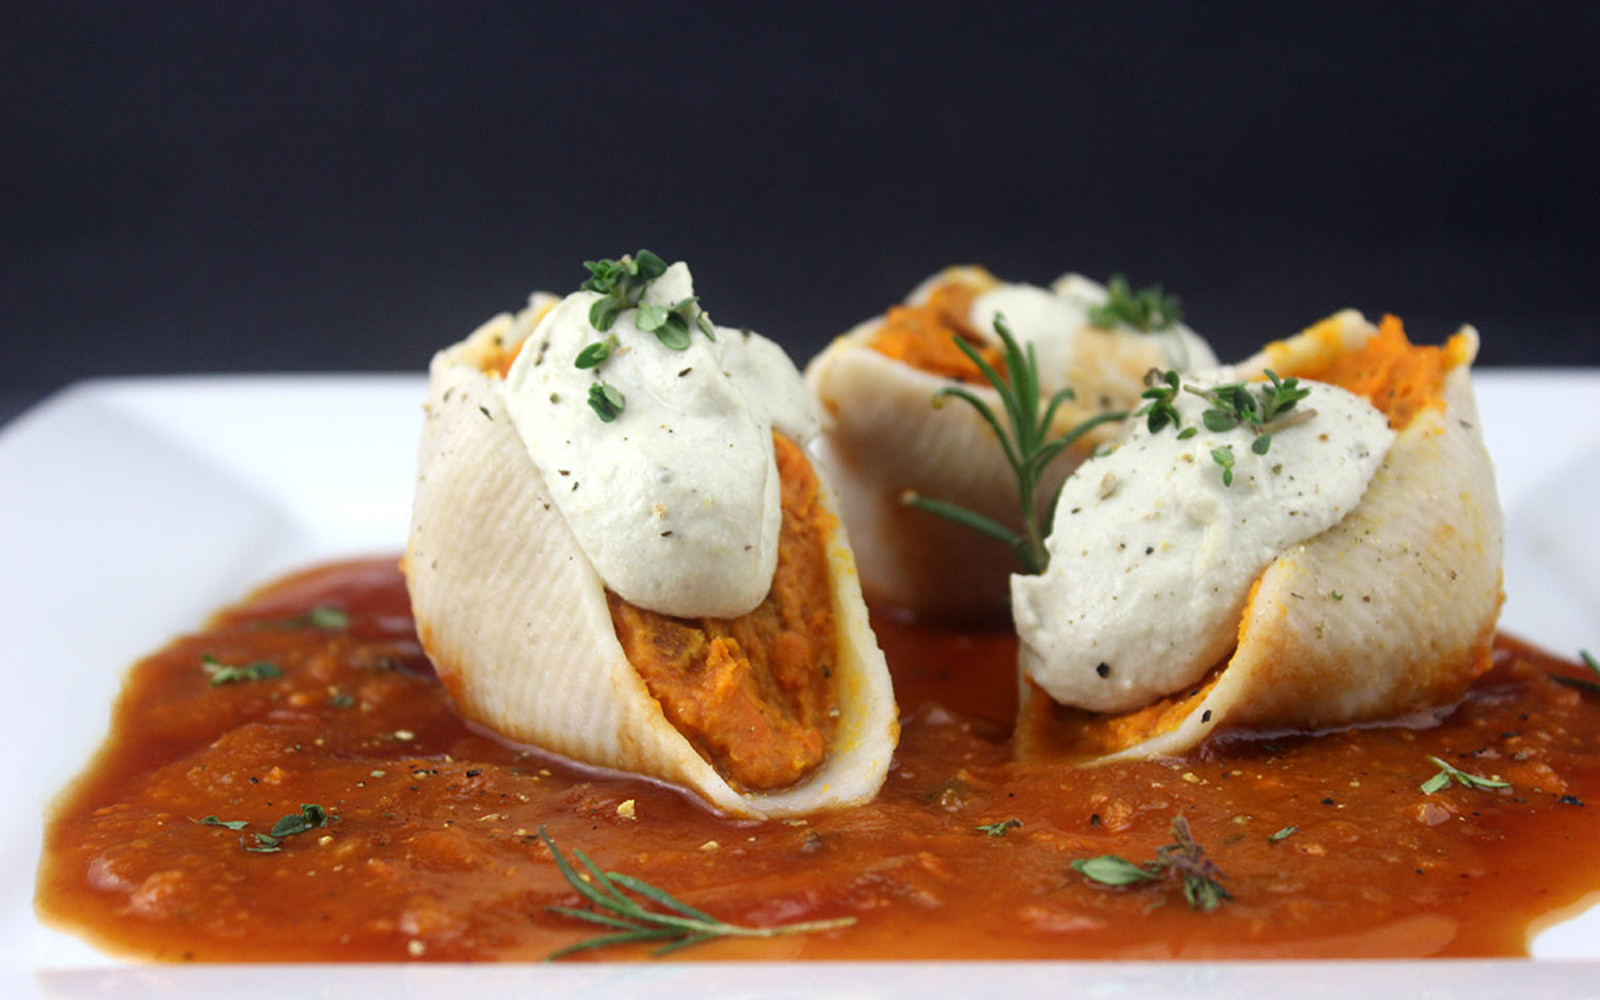 http://www.onegreenplanet.org/vegan-recipe/sweet-potato-stuffed-shells-with-cashew-alfredo/